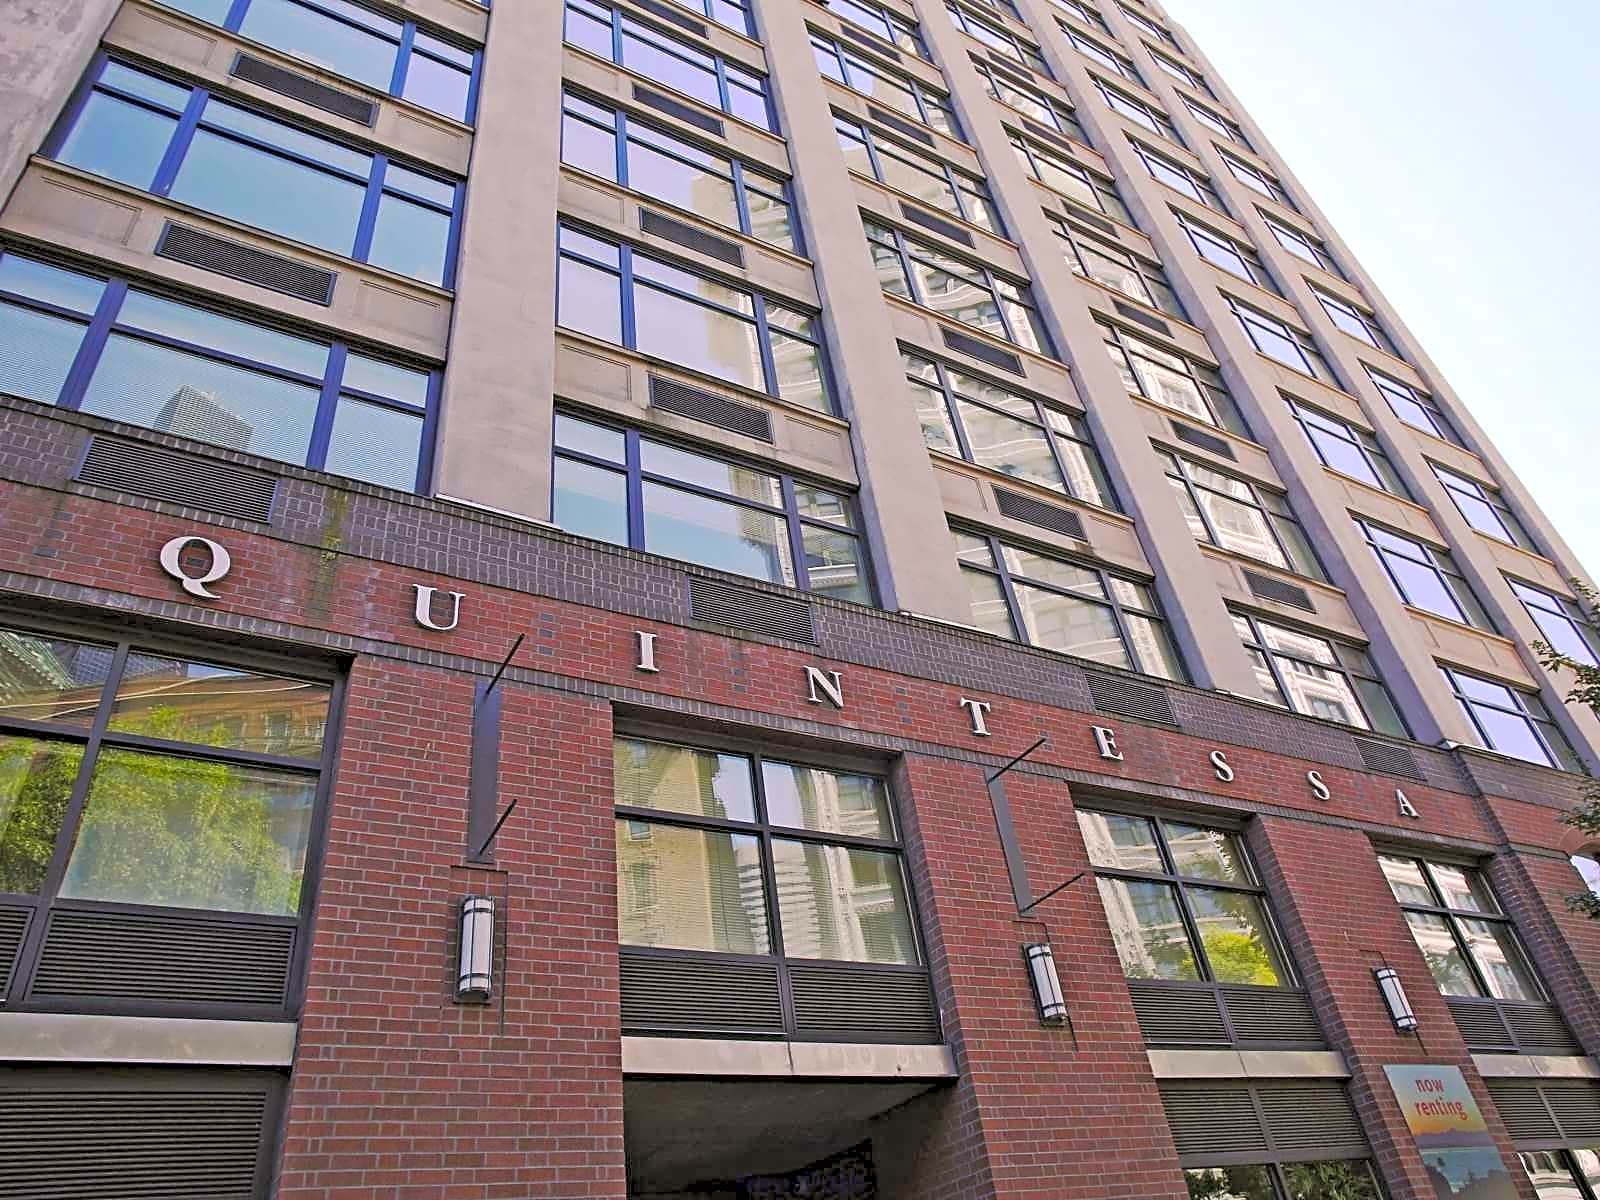 Quintessa apartments seattle wa 98104 for Art institute of seattle parking garage